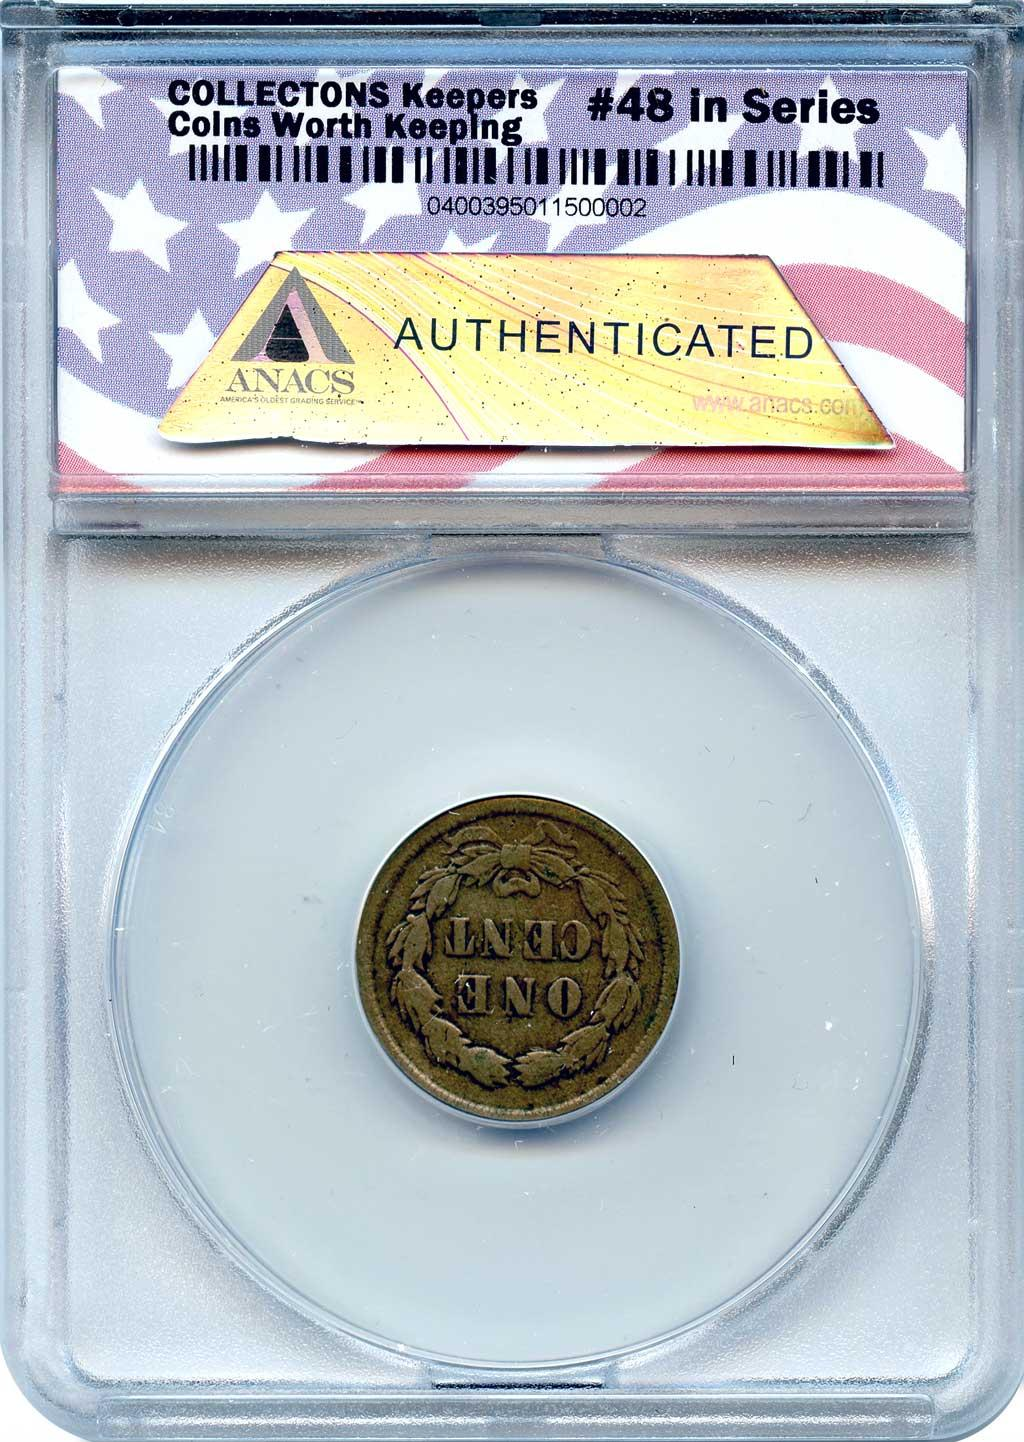 CollecTons Keepers #48: 1859 Type 1 Indian Head Cent with Laurel Wreath Certified in Exclusive ANACS Circulated Holder